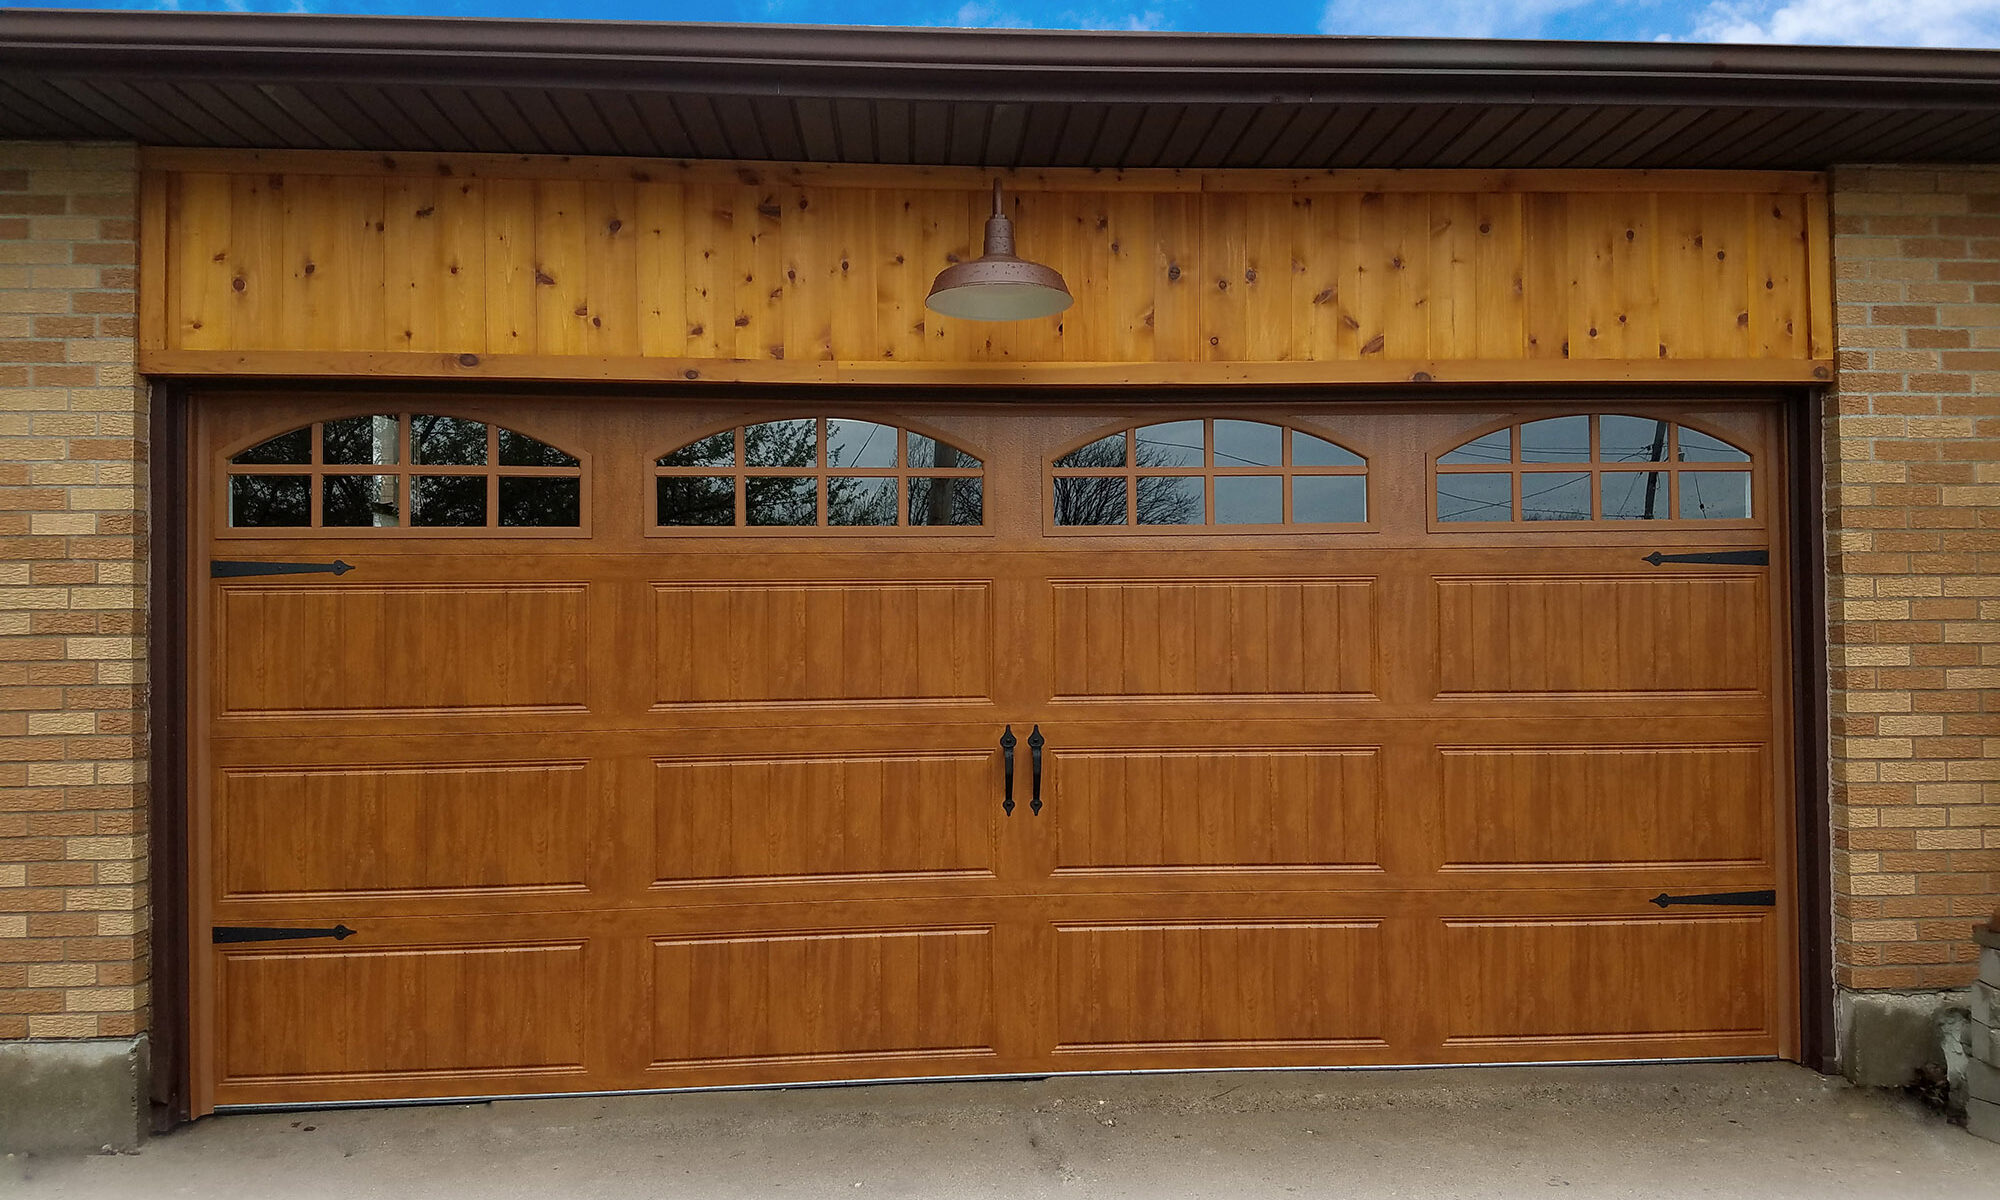 Garage Doors By Voorhis Specializing In Garage Doors Openers And Accessories